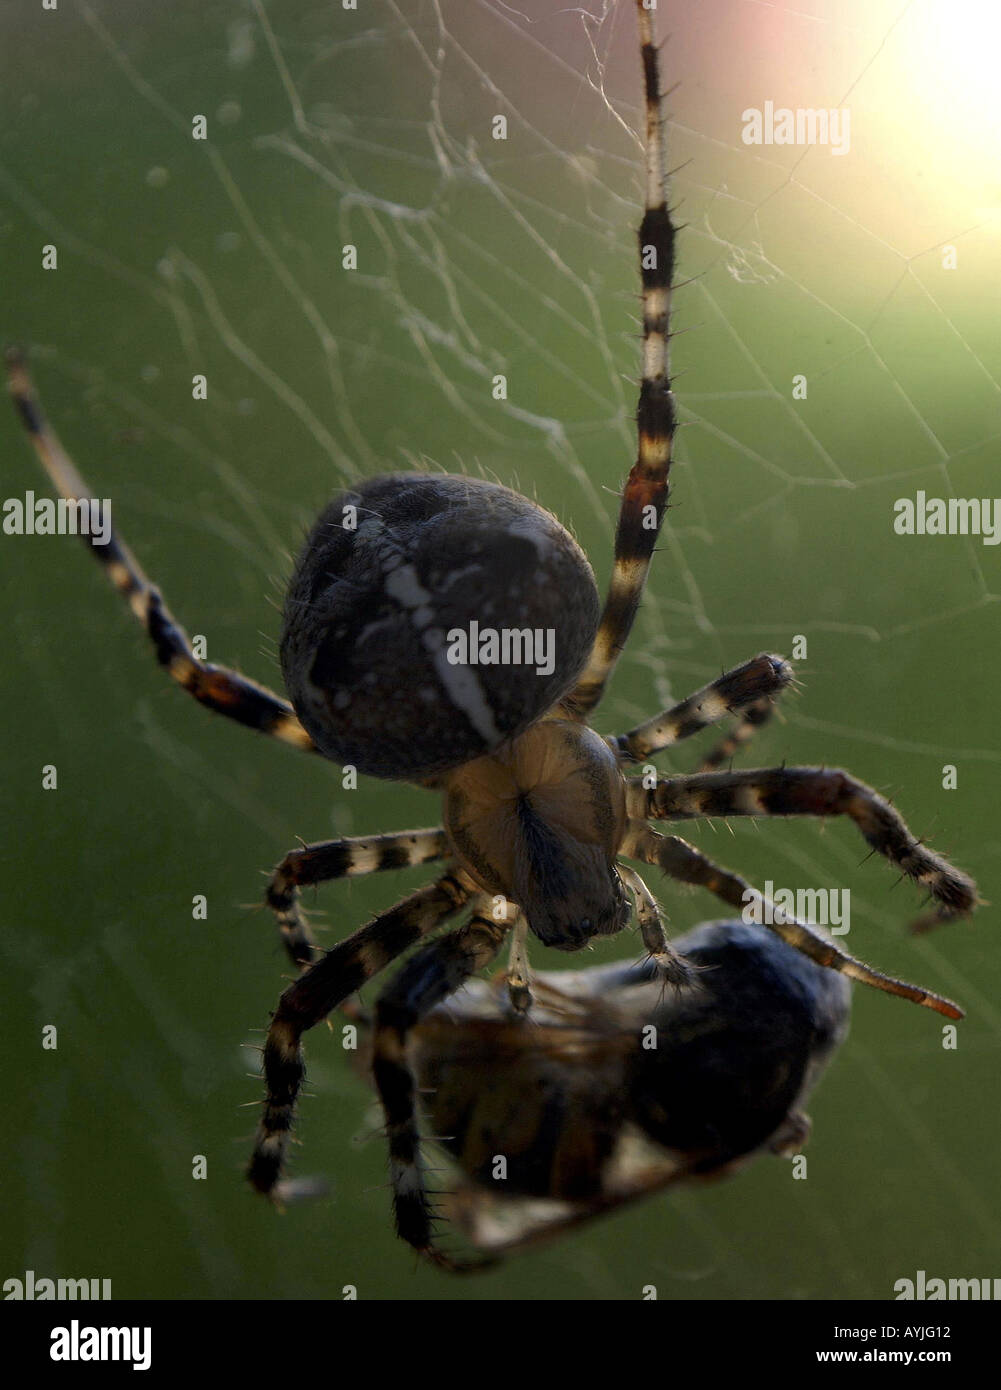 Spinne mit Beute - Stock Image